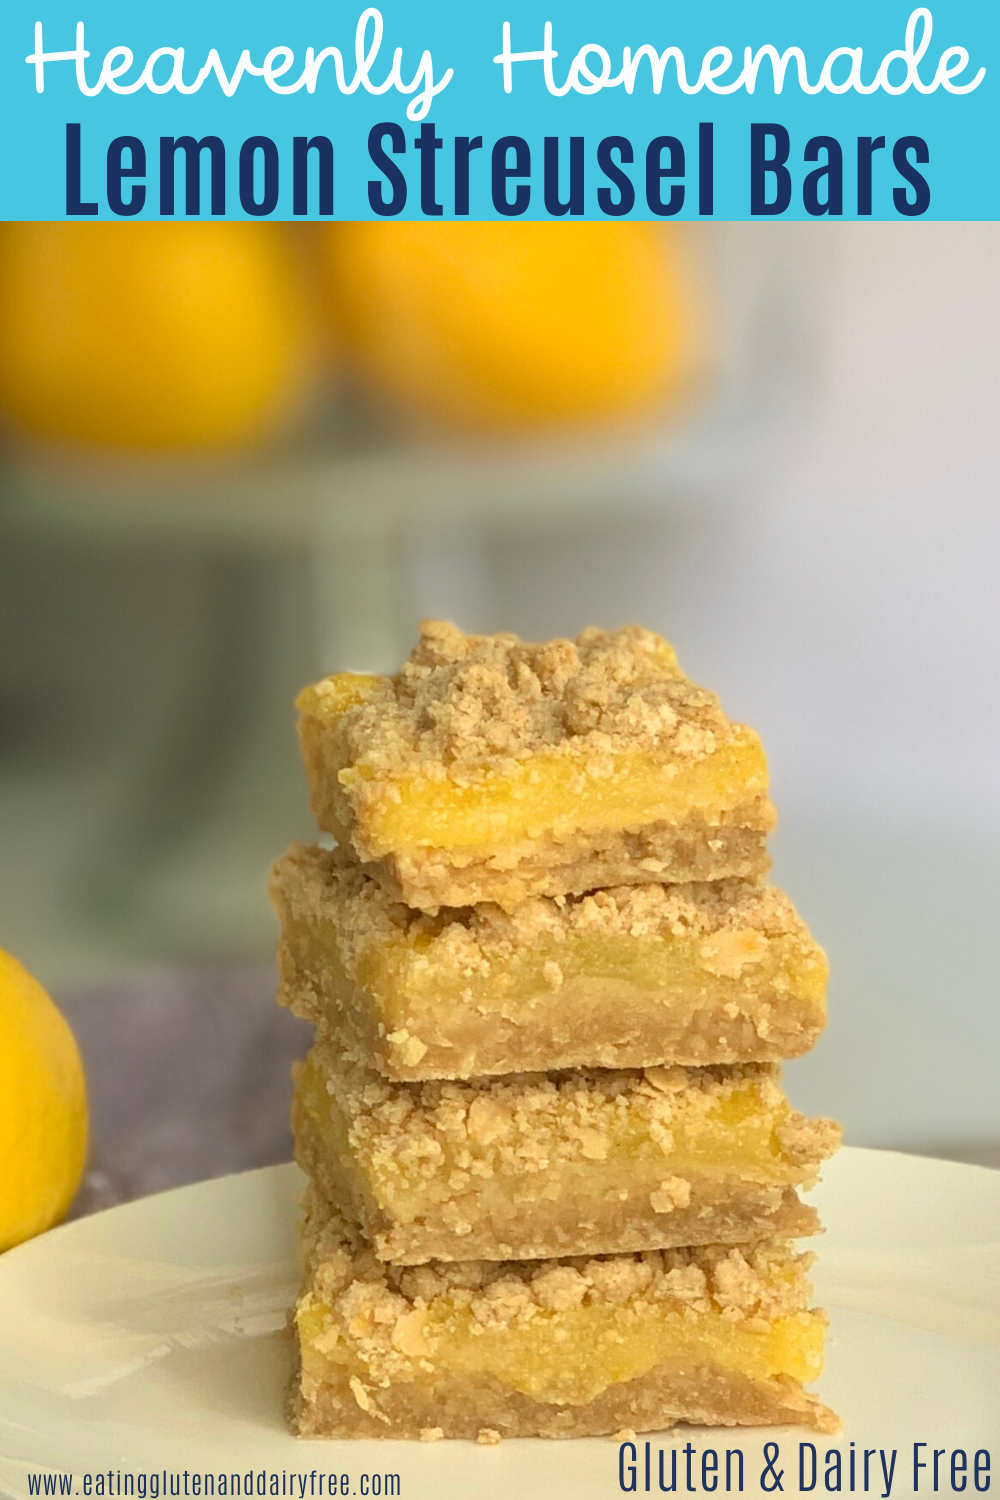 A stack of creamy and tangy lemon filling between a streusel crust and topping.